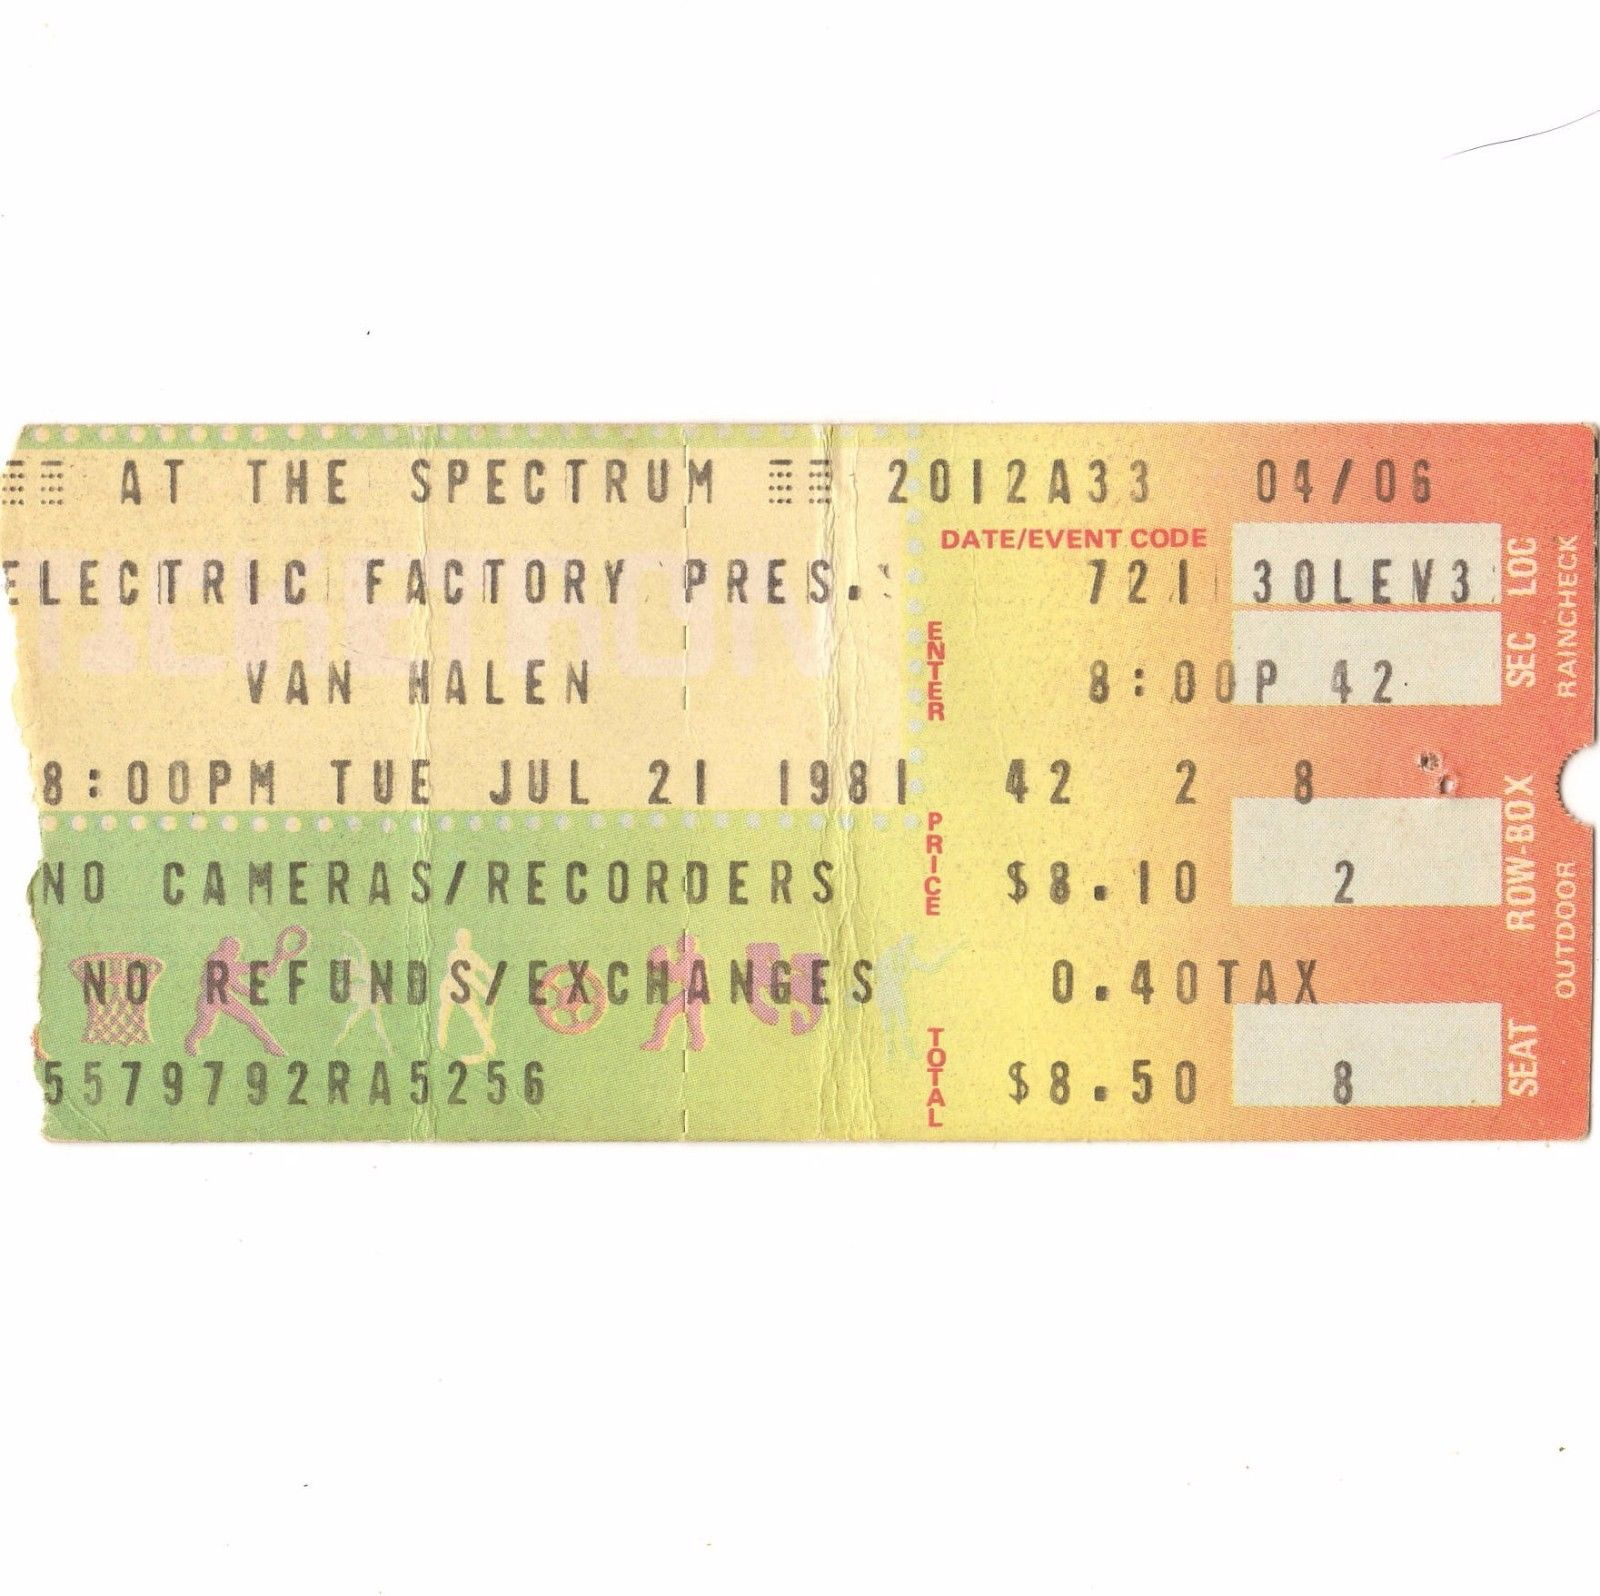 7/21/1981 Ticket - Philly Spectrum